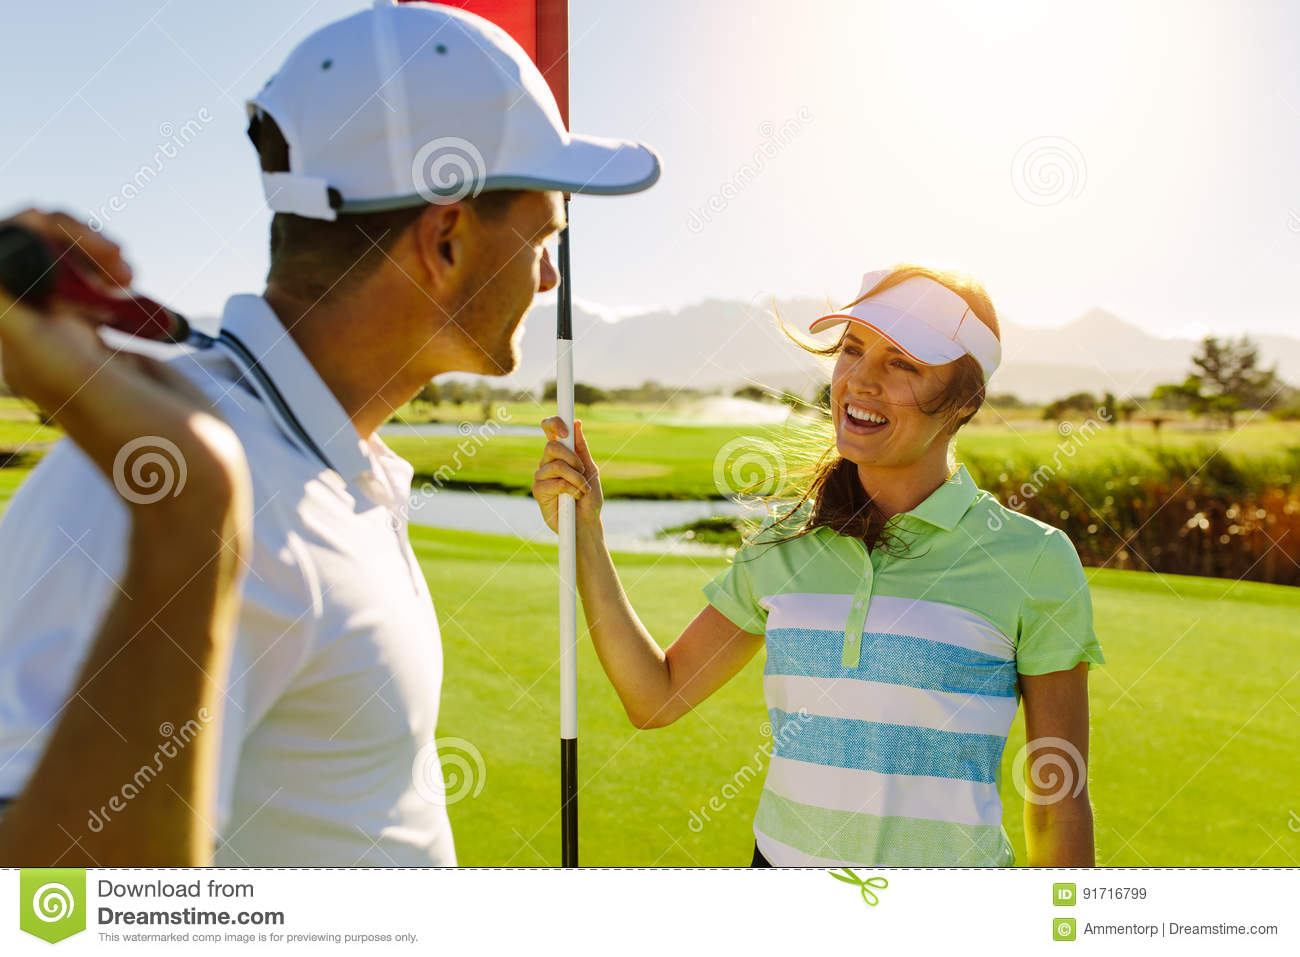 Golfing couple on the putting green at the golf course